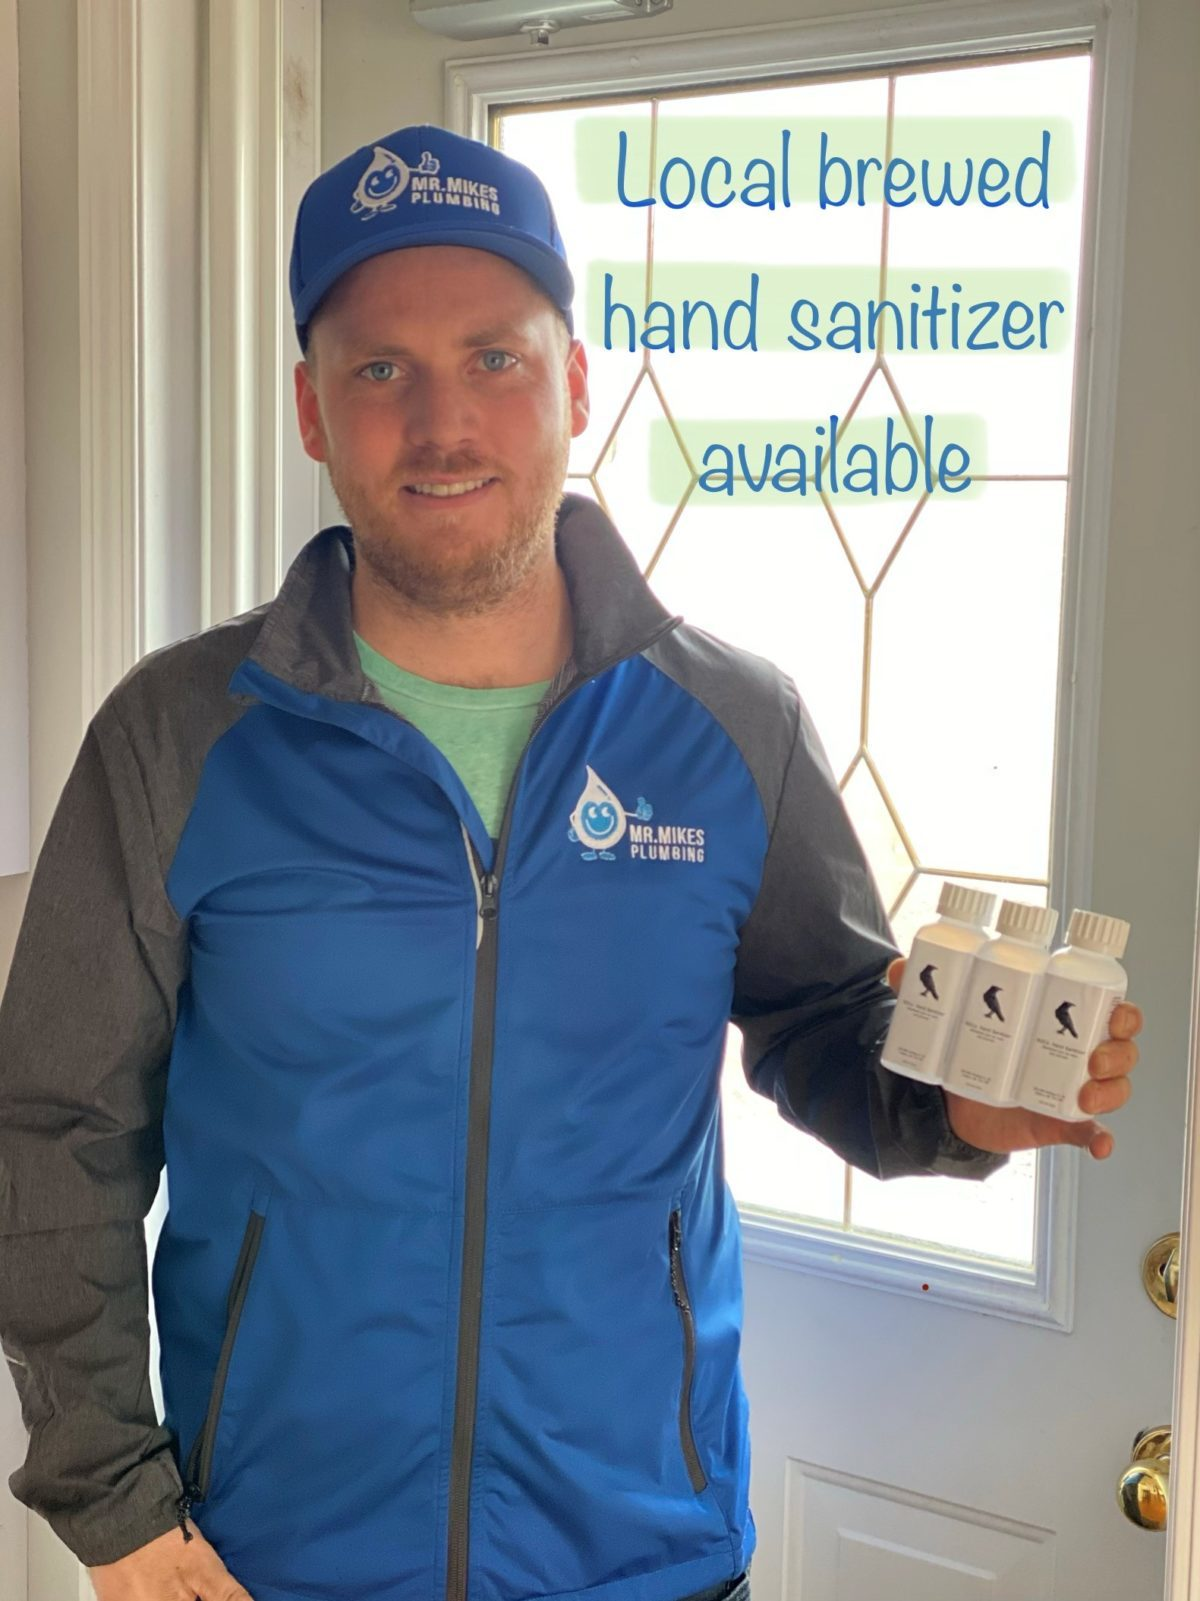 Plumber in Calgary helping calgary find hand sanitizer